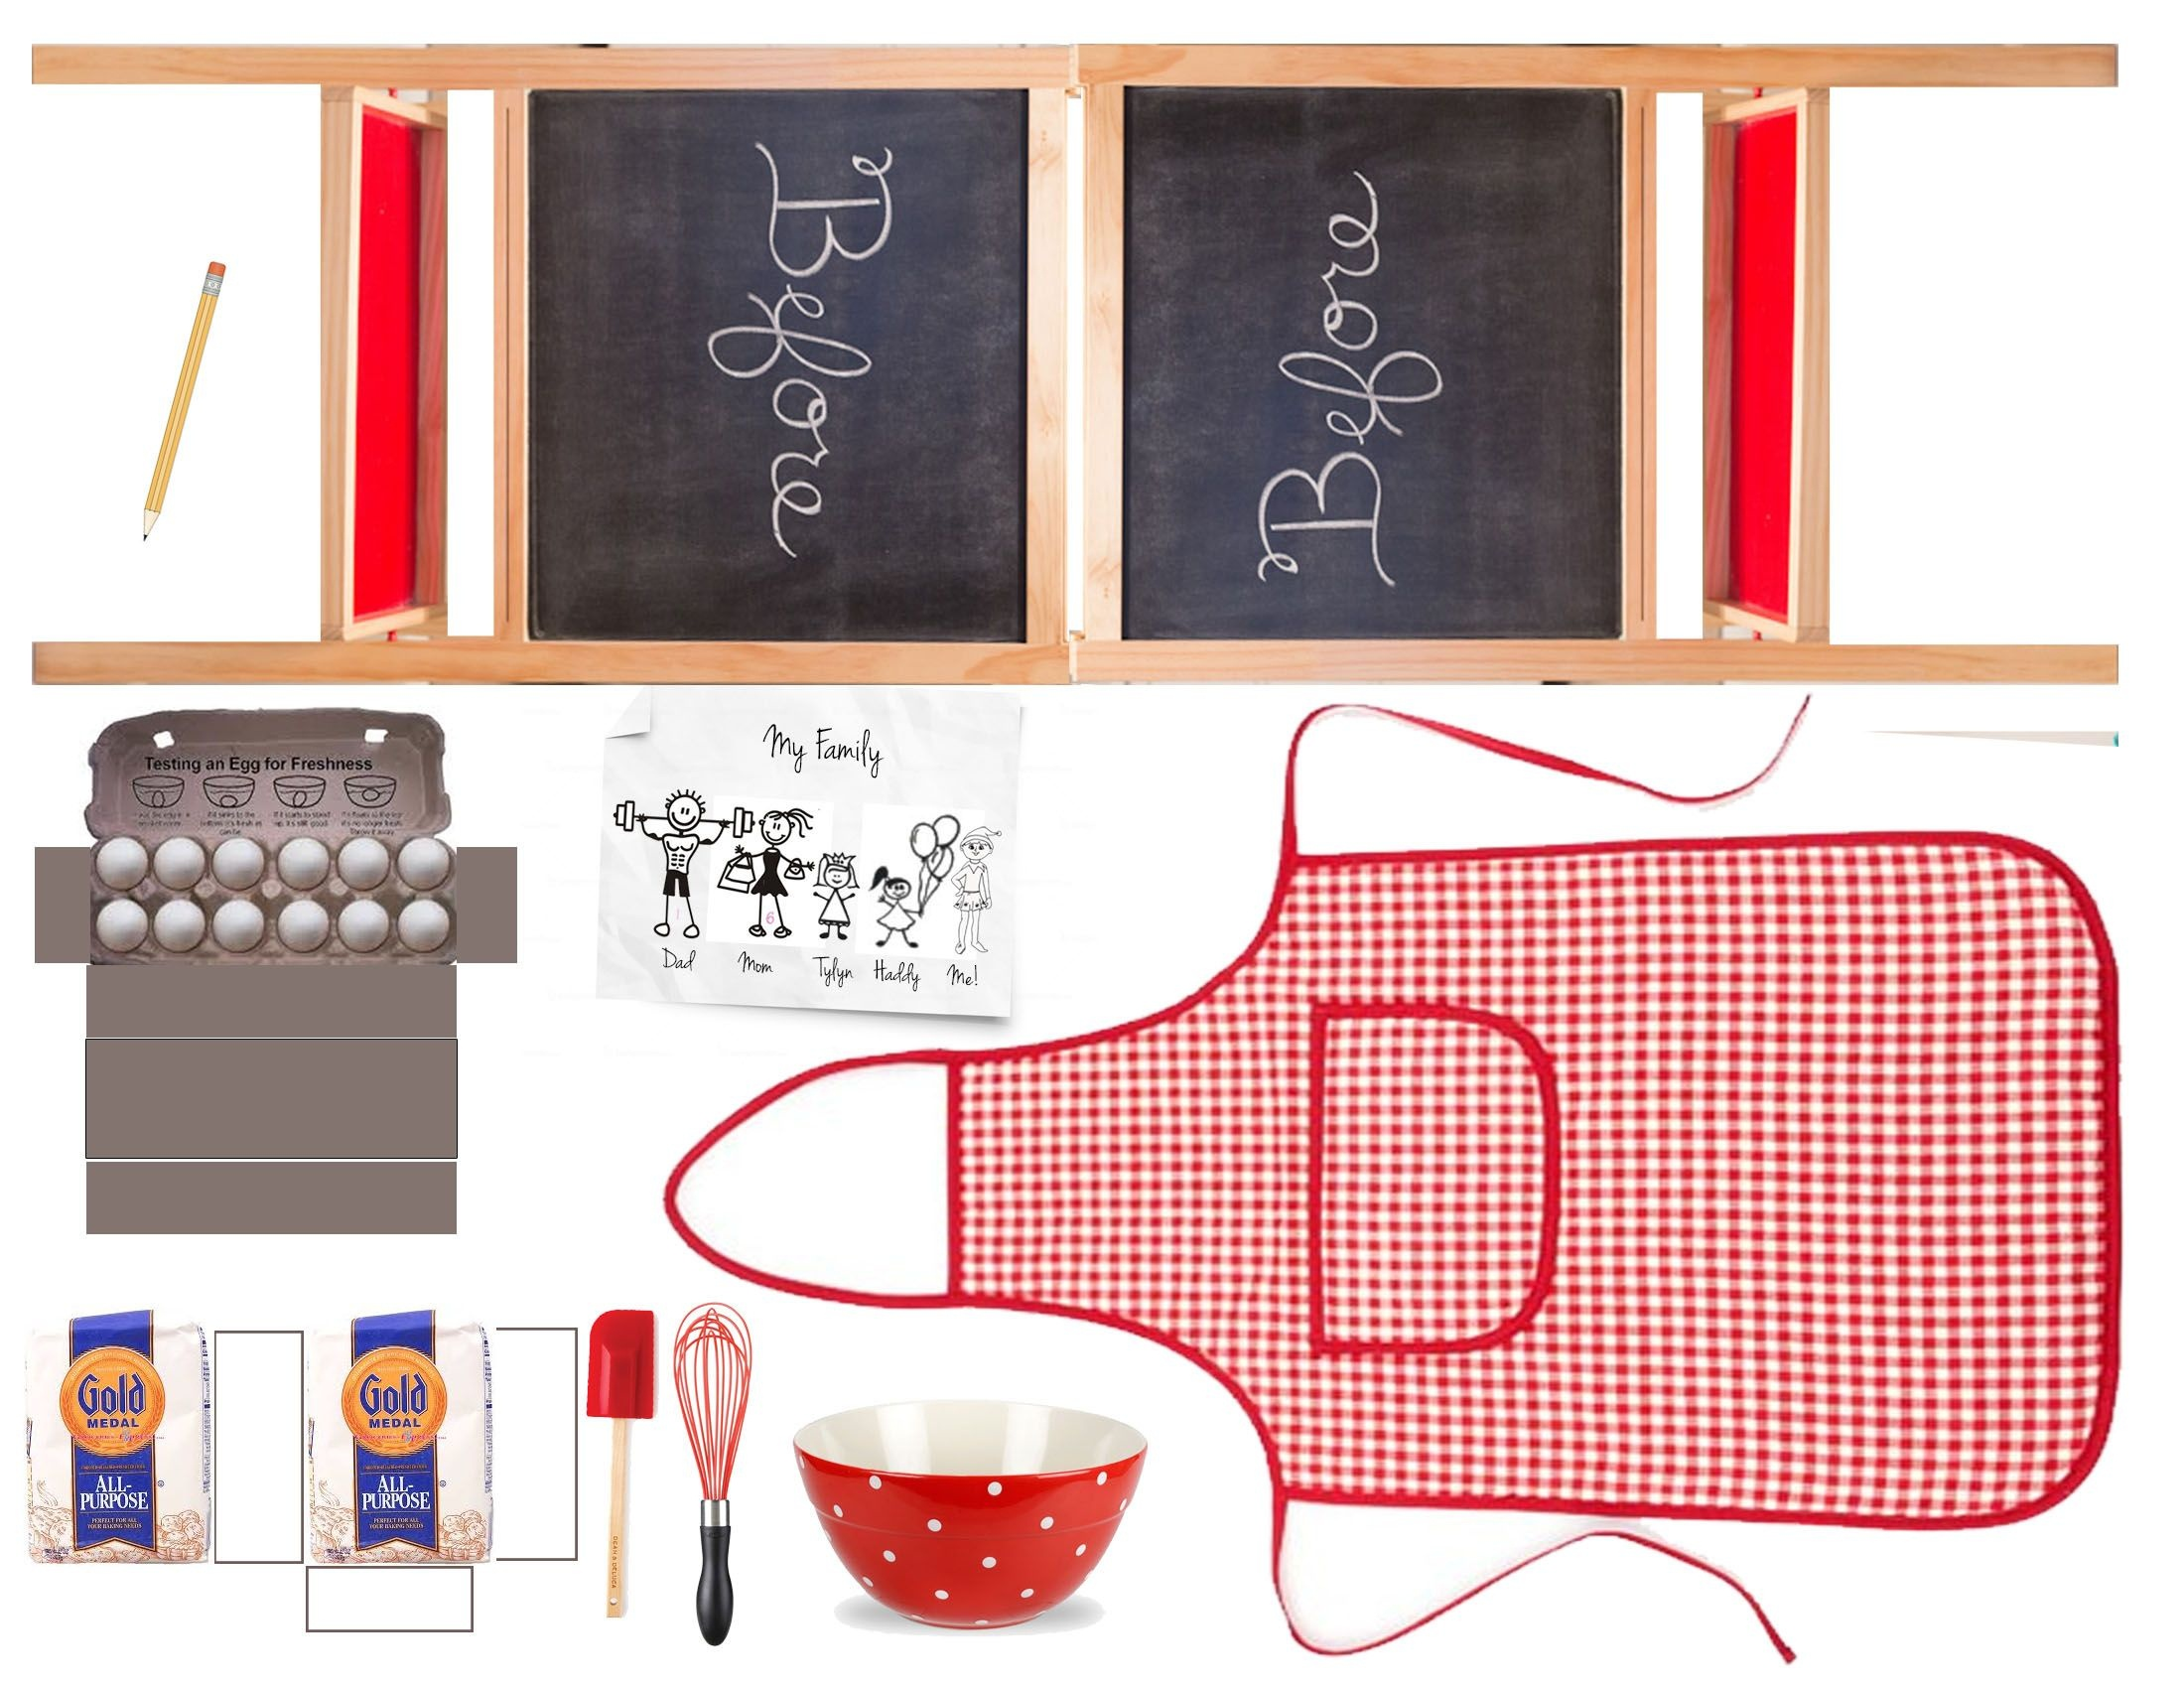 Elf On The Shelf Free Printable Props | Christmas | Elf On Shelf - Elf On The Shelf Printable Props Free